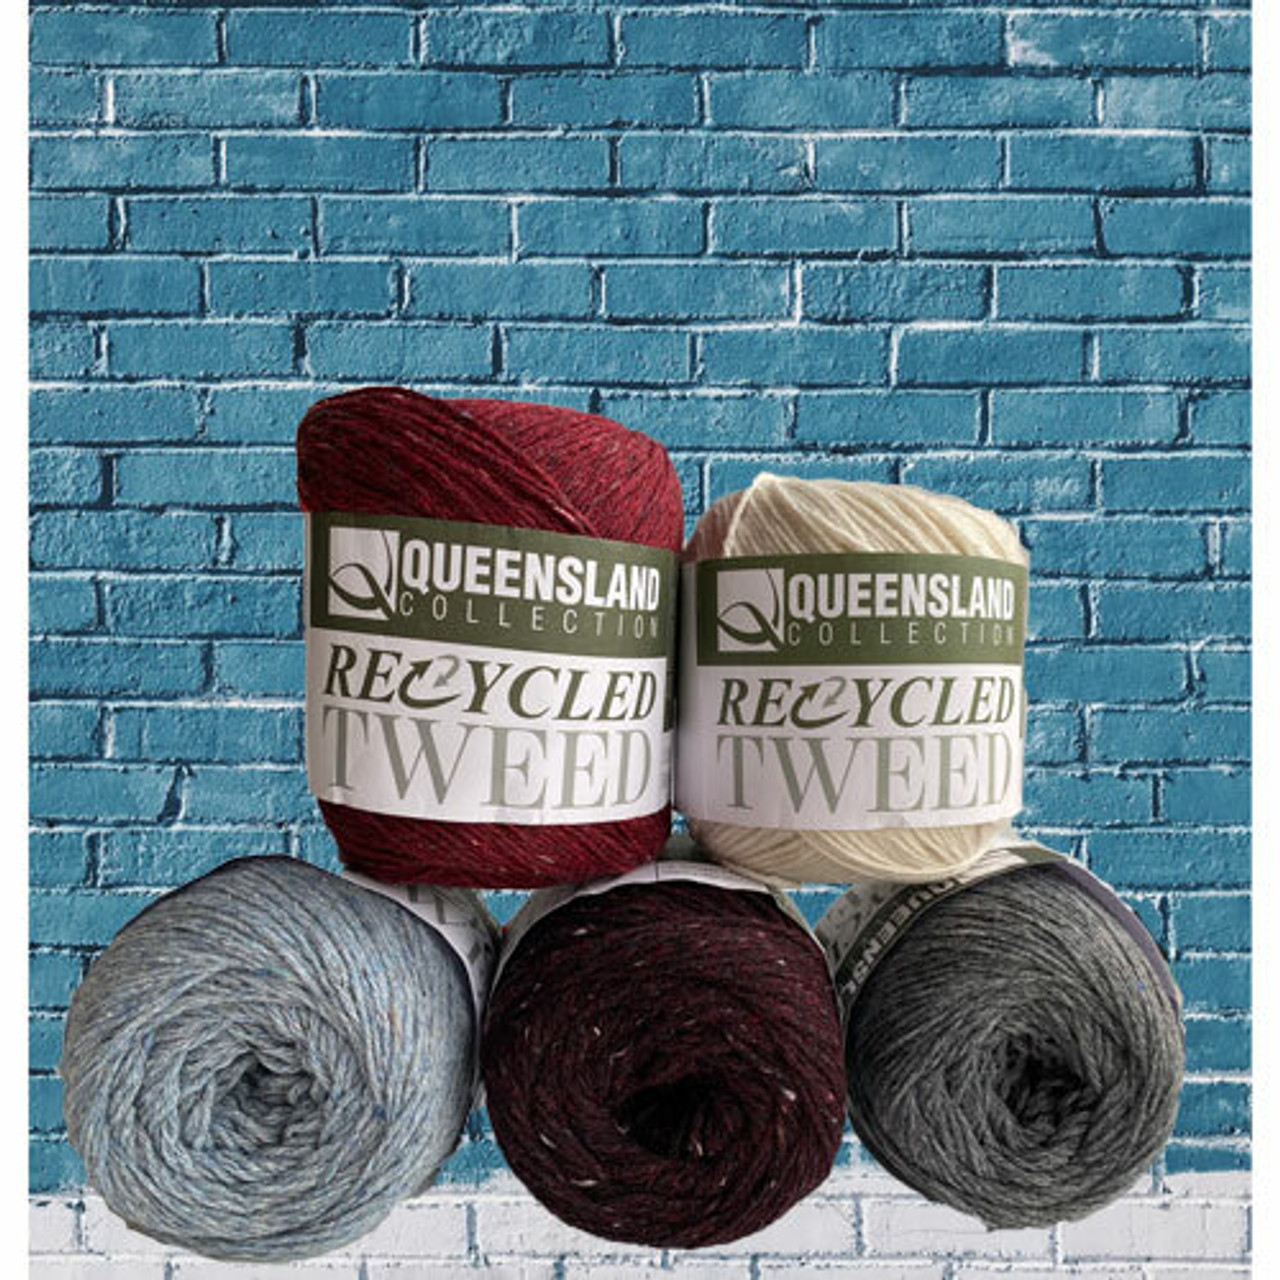 Queensland Collection - Recycled Tweed